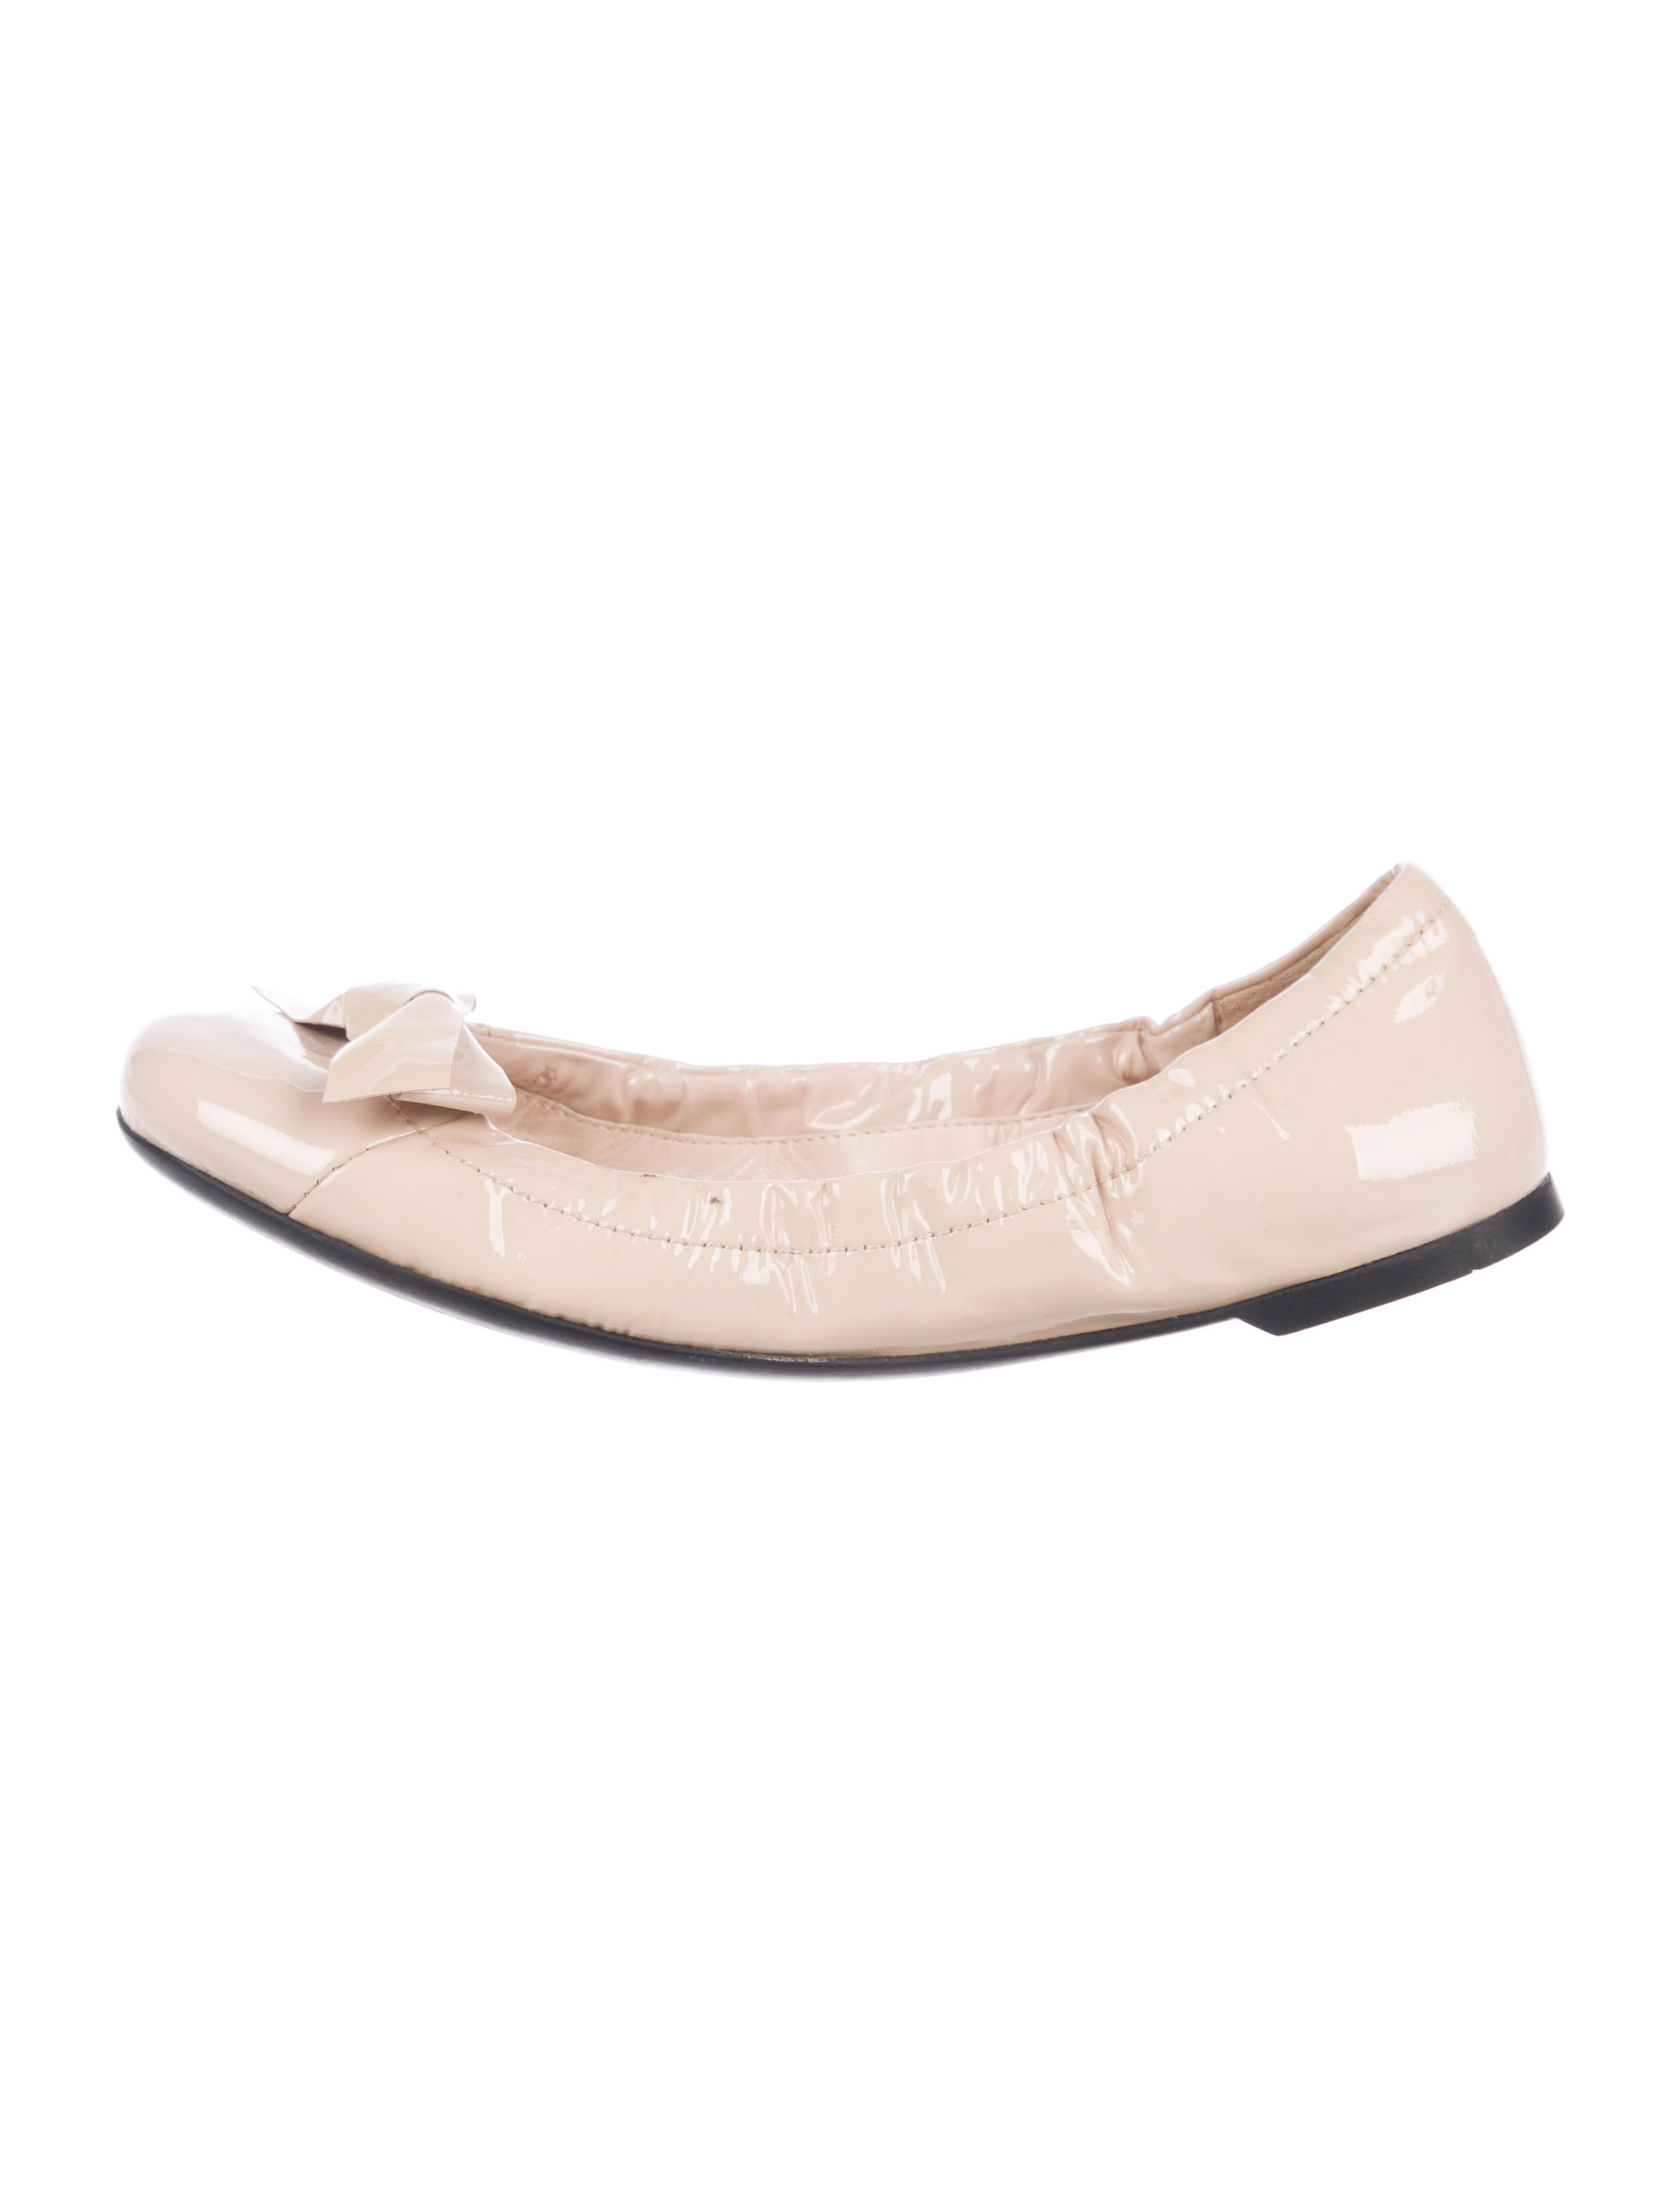 49002df05d Prada Patent Leather Round-Toe Flats - Shoes - PRA221812 | The RealReal